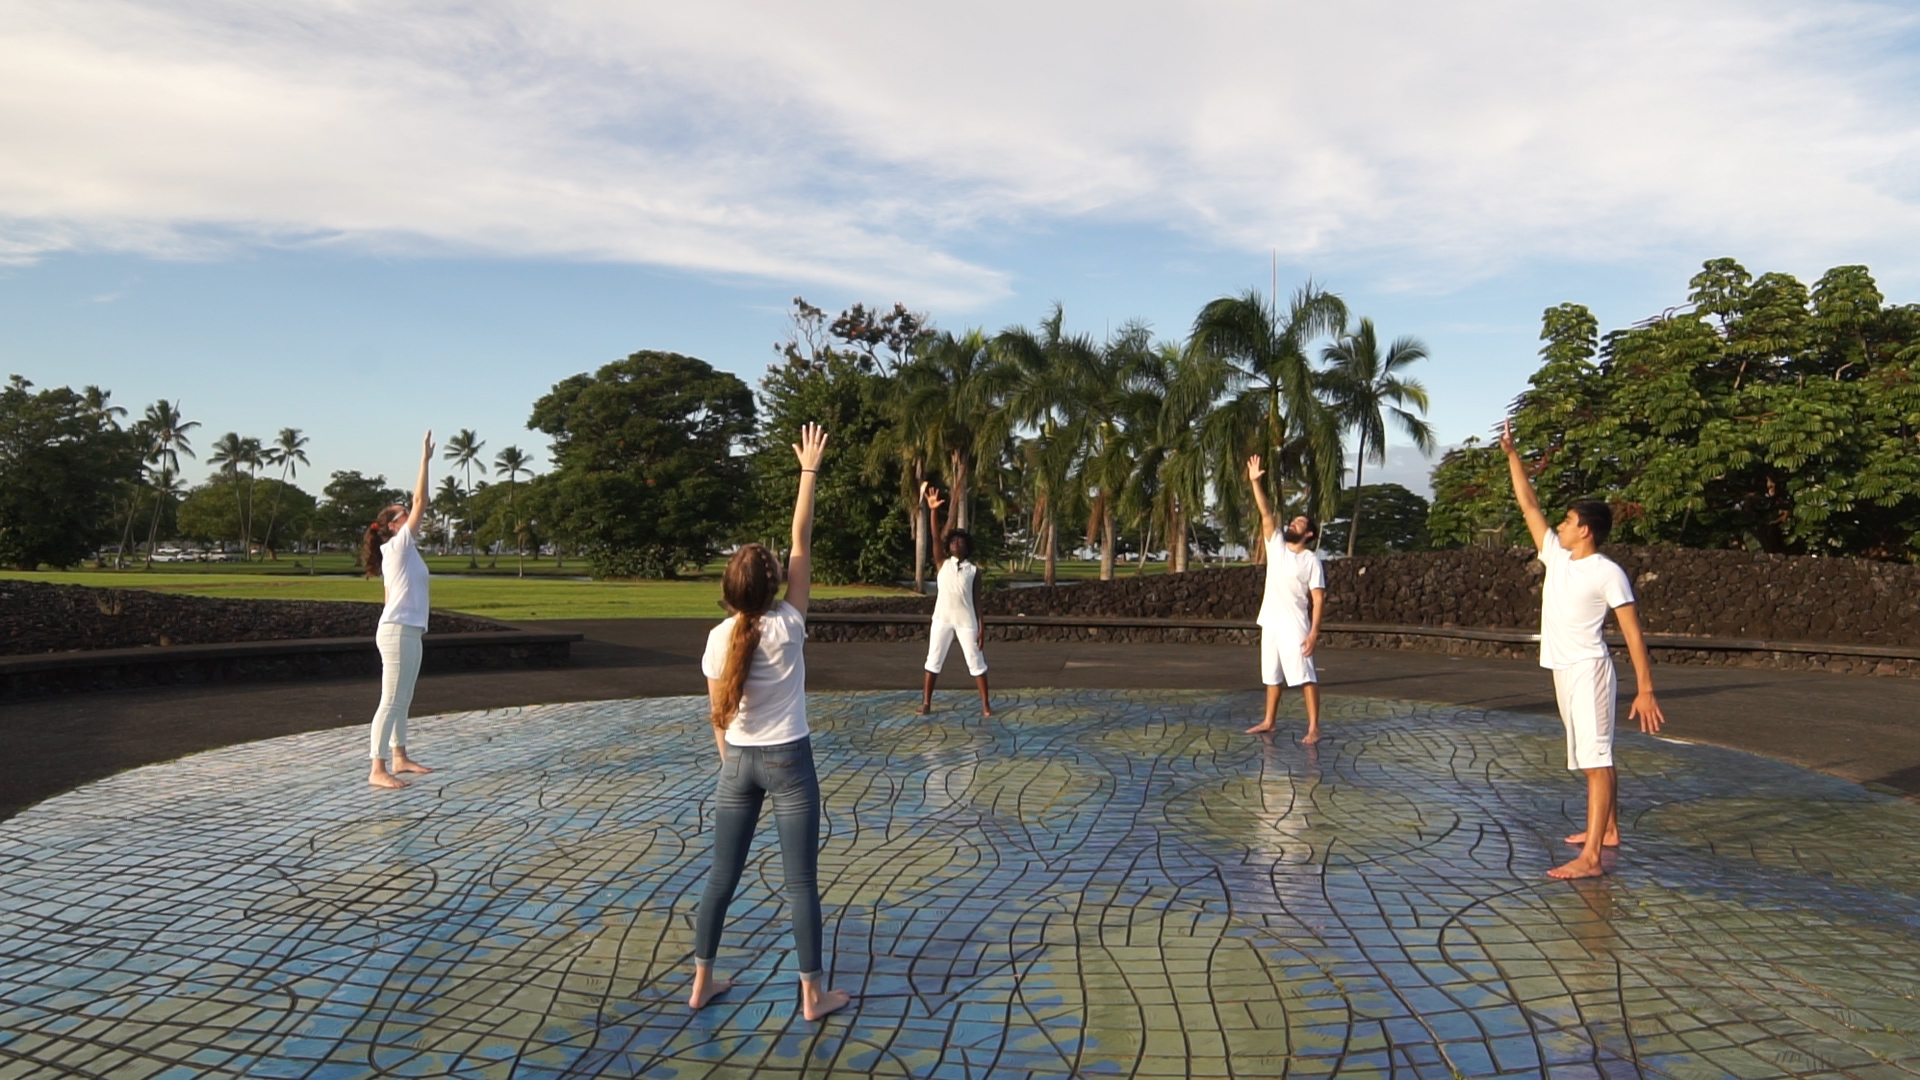 Five dancers stand on a circular floor mosaic, each with one arm extended him above their heads.